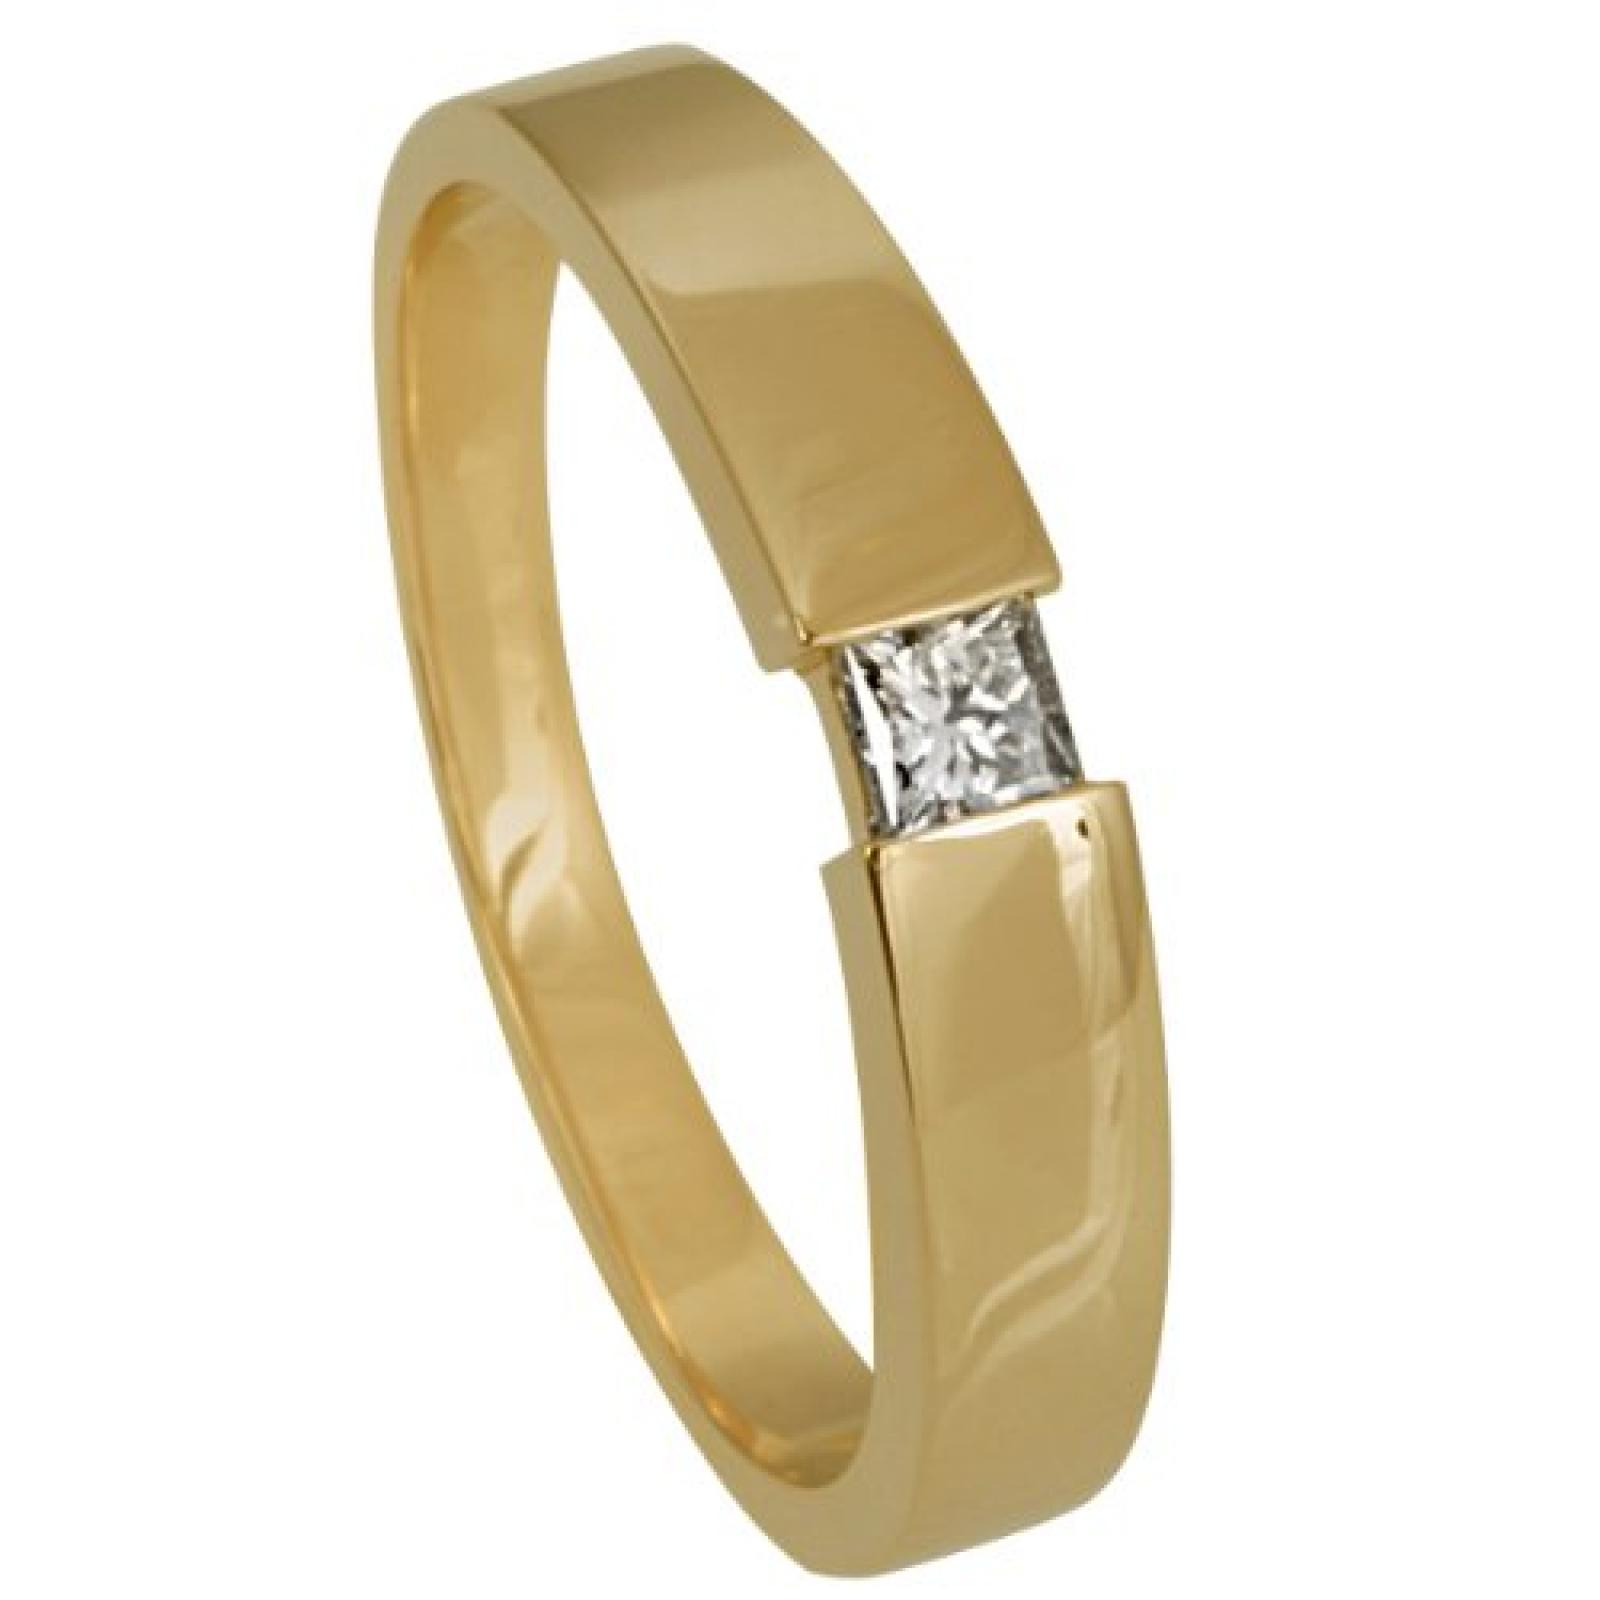 Bella Donna Damen-Ring 585 Gelbgold 1 Diamant Princess 0.15 ct.